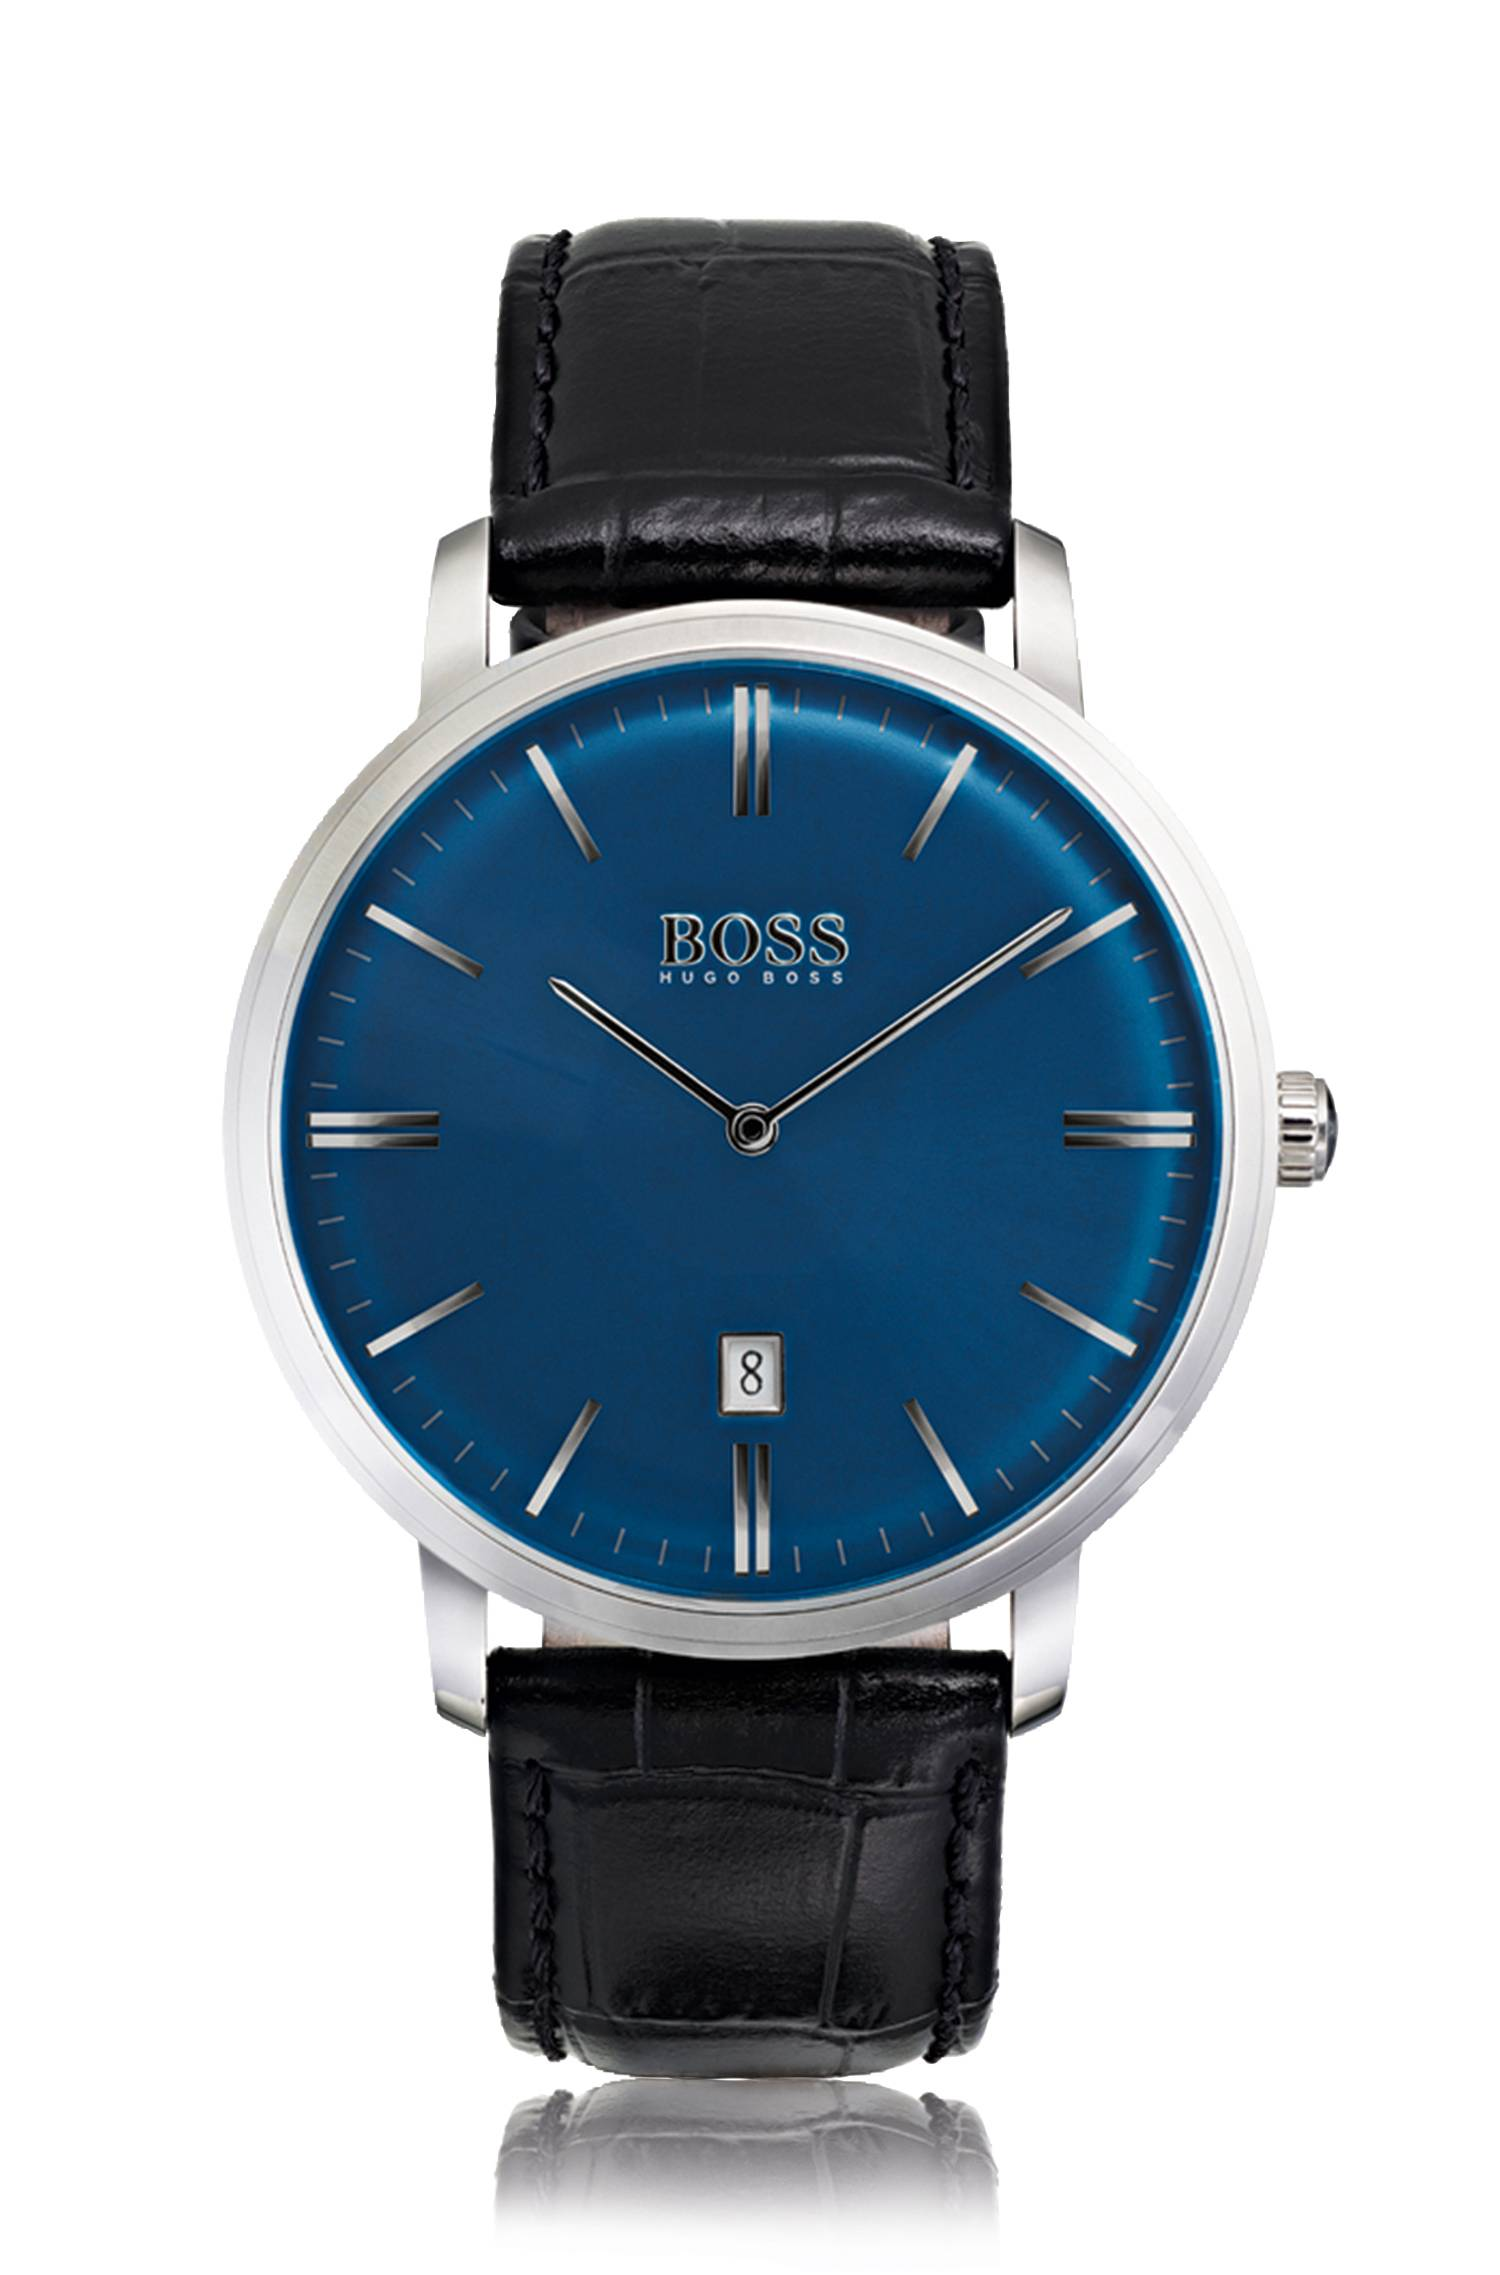 Stainlesssteel watch with sunray blue dial and leather strap